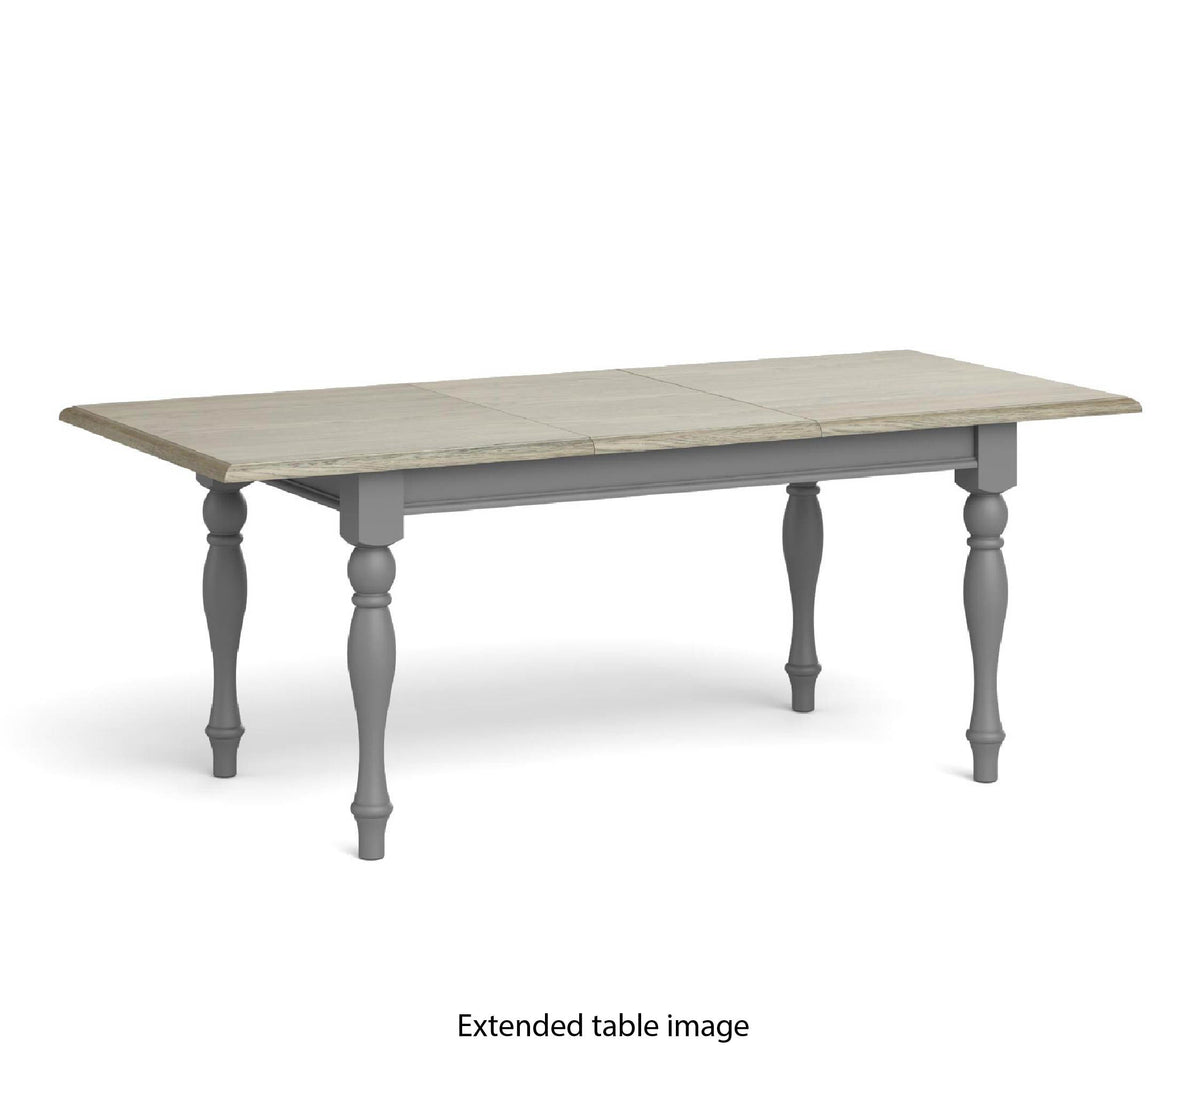 Mulsanne Grey Compact Extending Dining Table - Extended